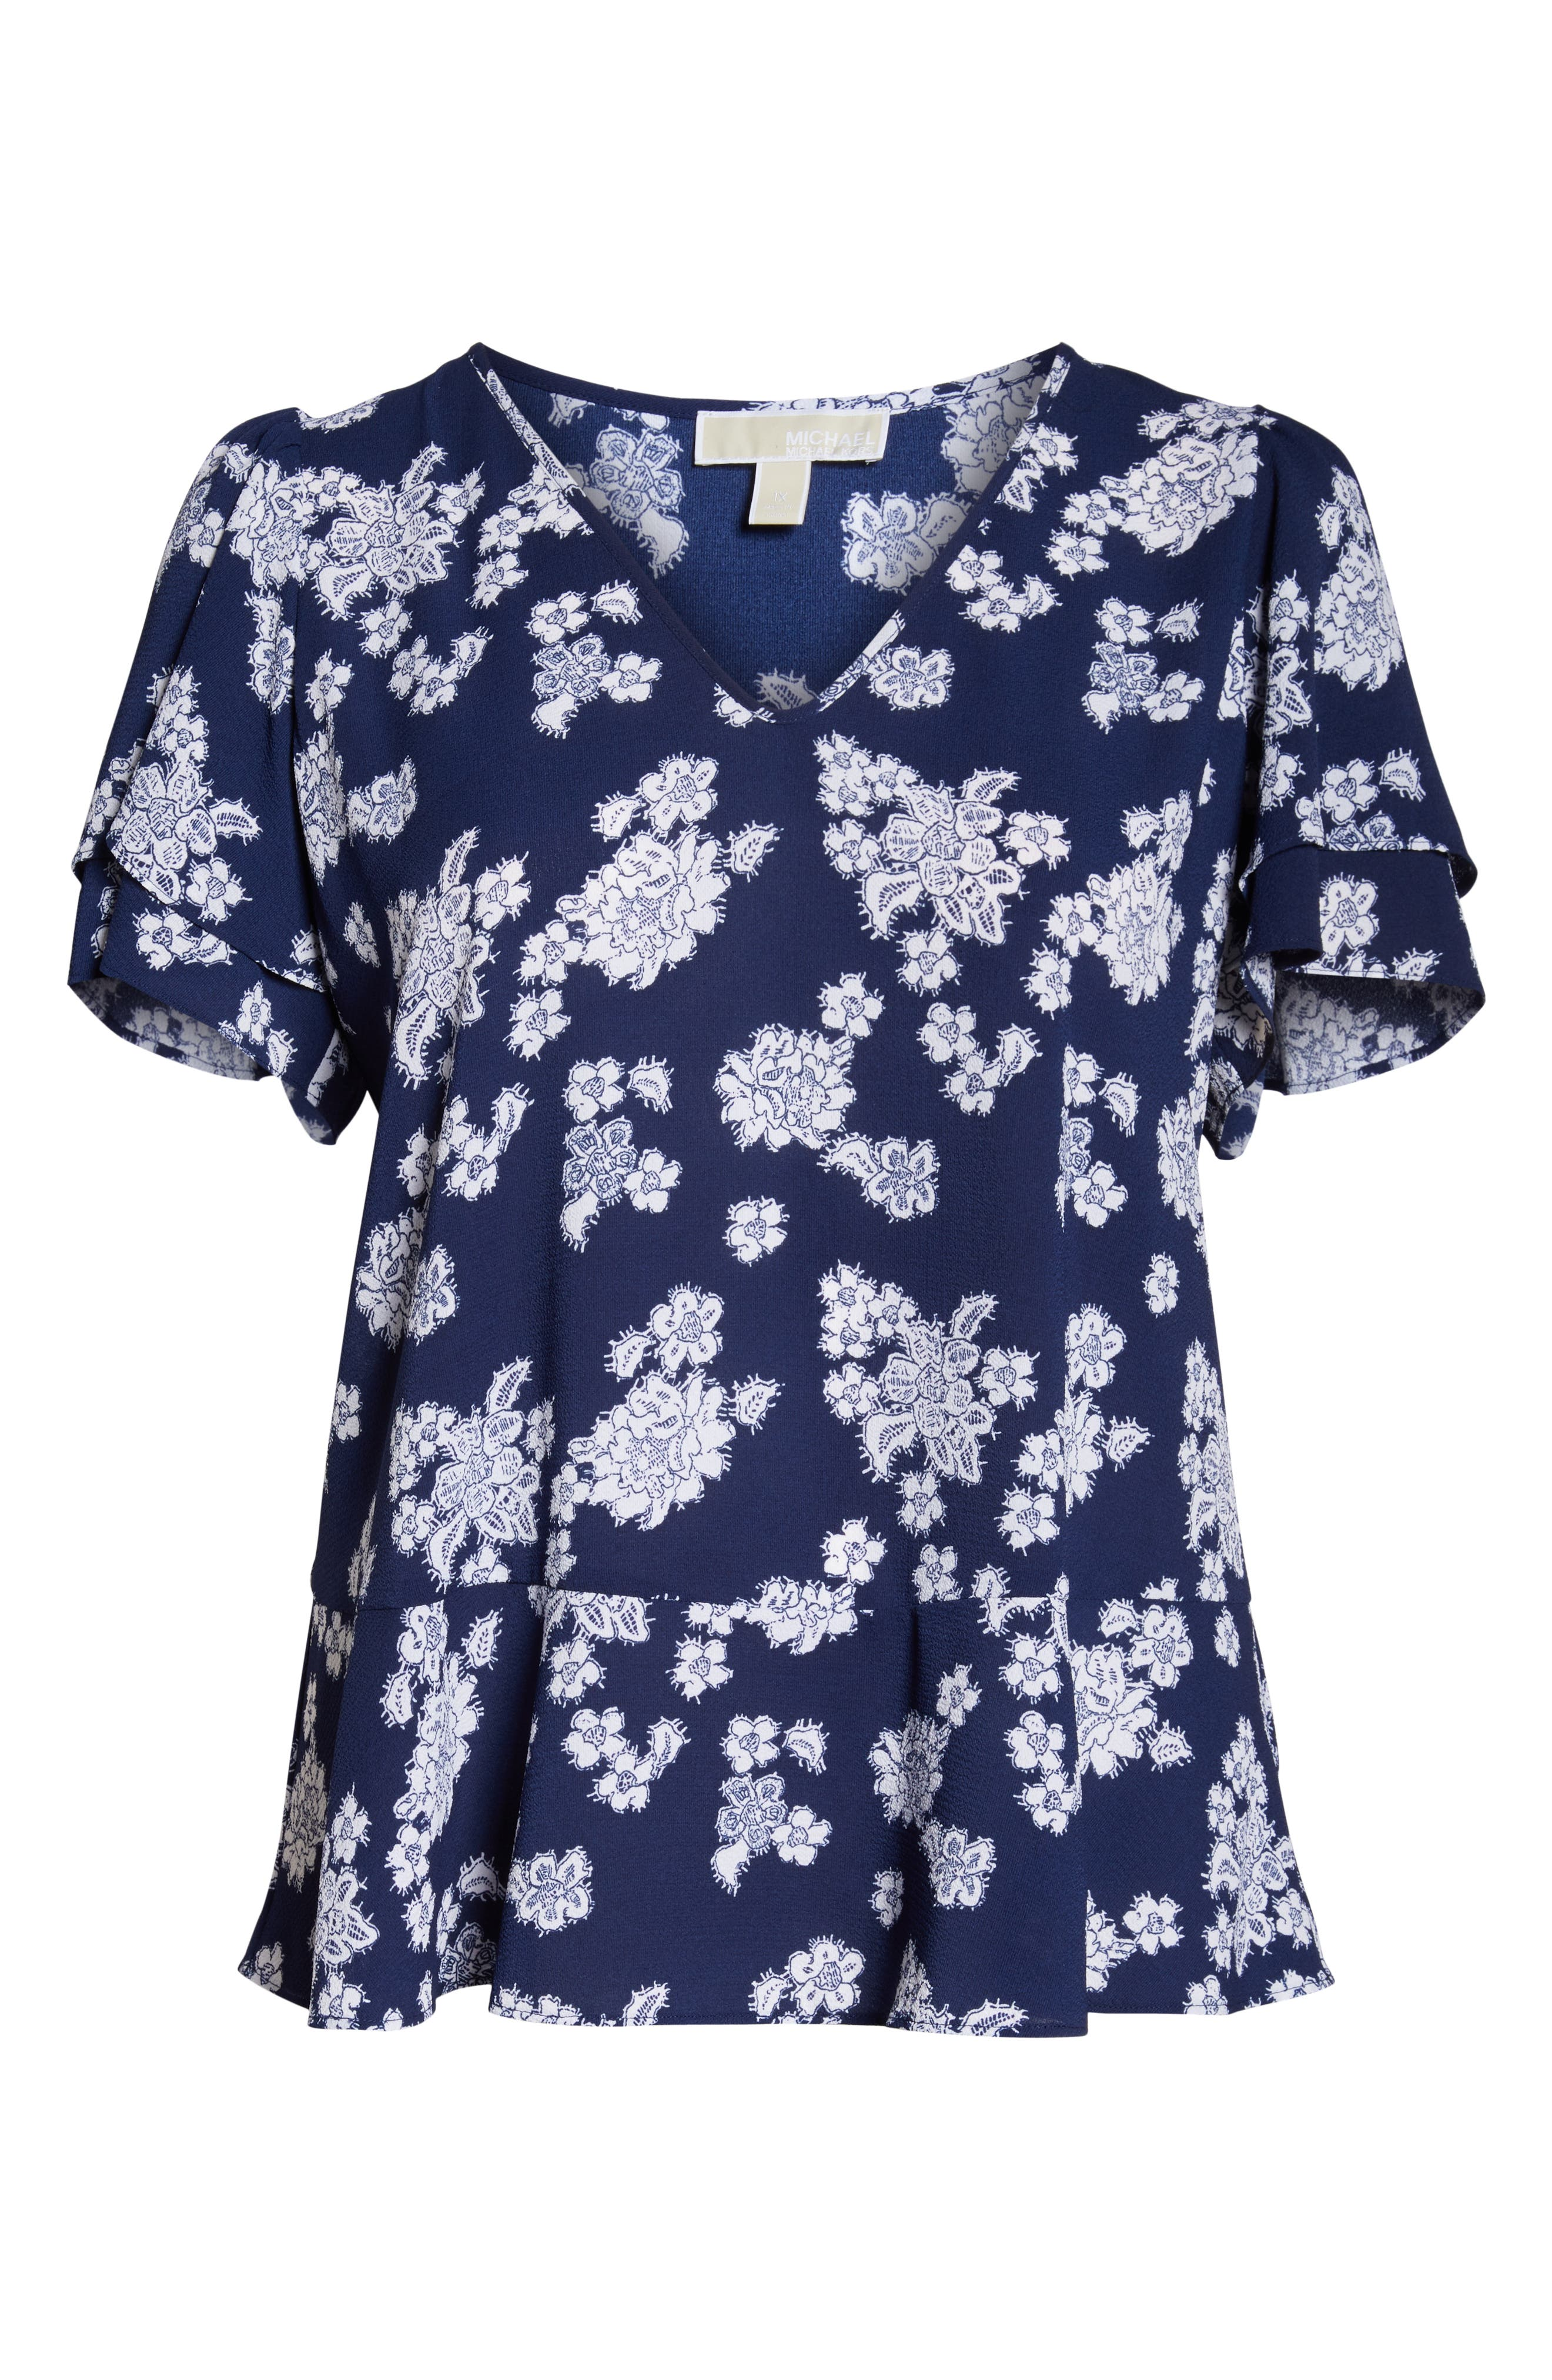 Tossed Lace Flowers Top,                             Alternate thumbnail 6, color,                             TRUE NAVY/ WHITE